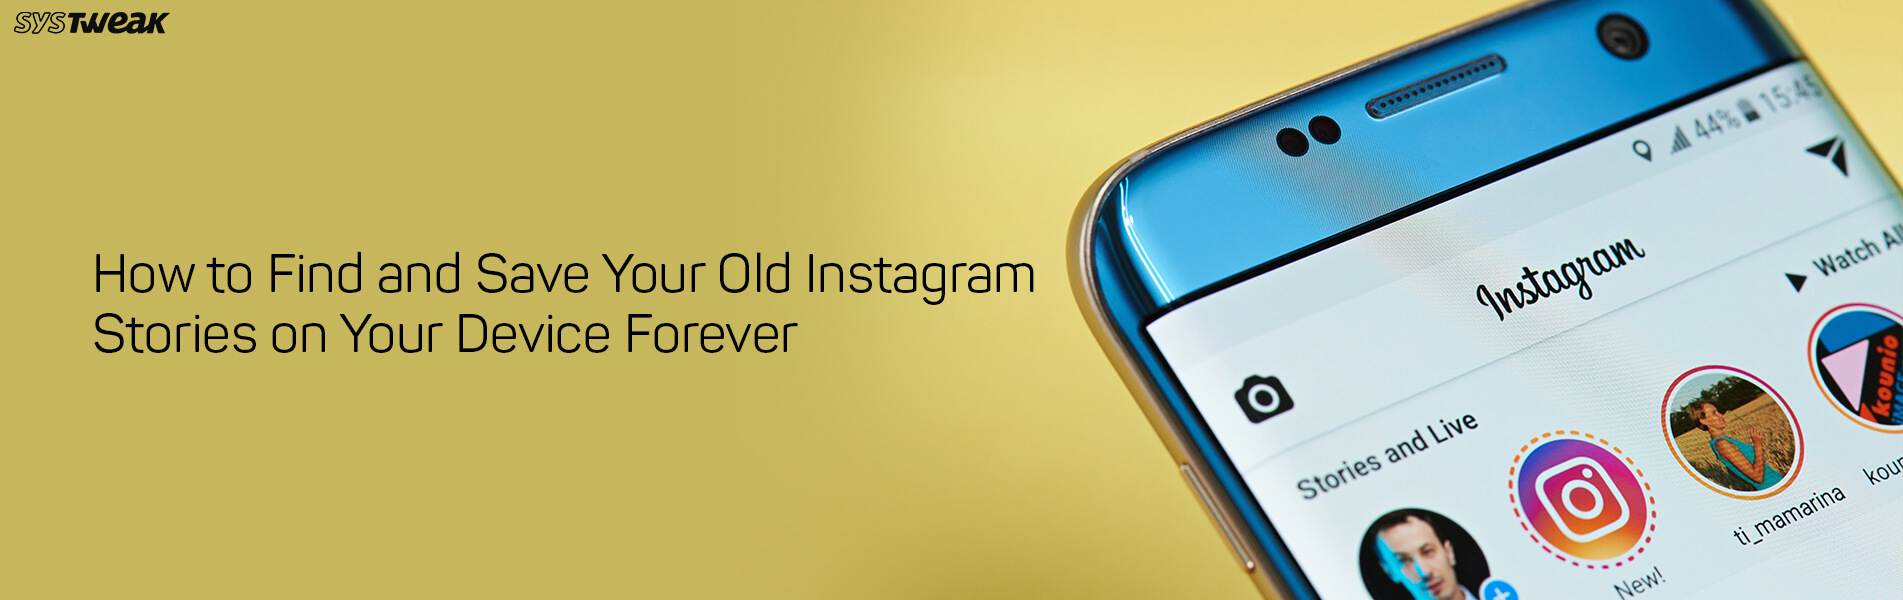 How To Find And Save Your Old Instagram Stories On Your Device Forever